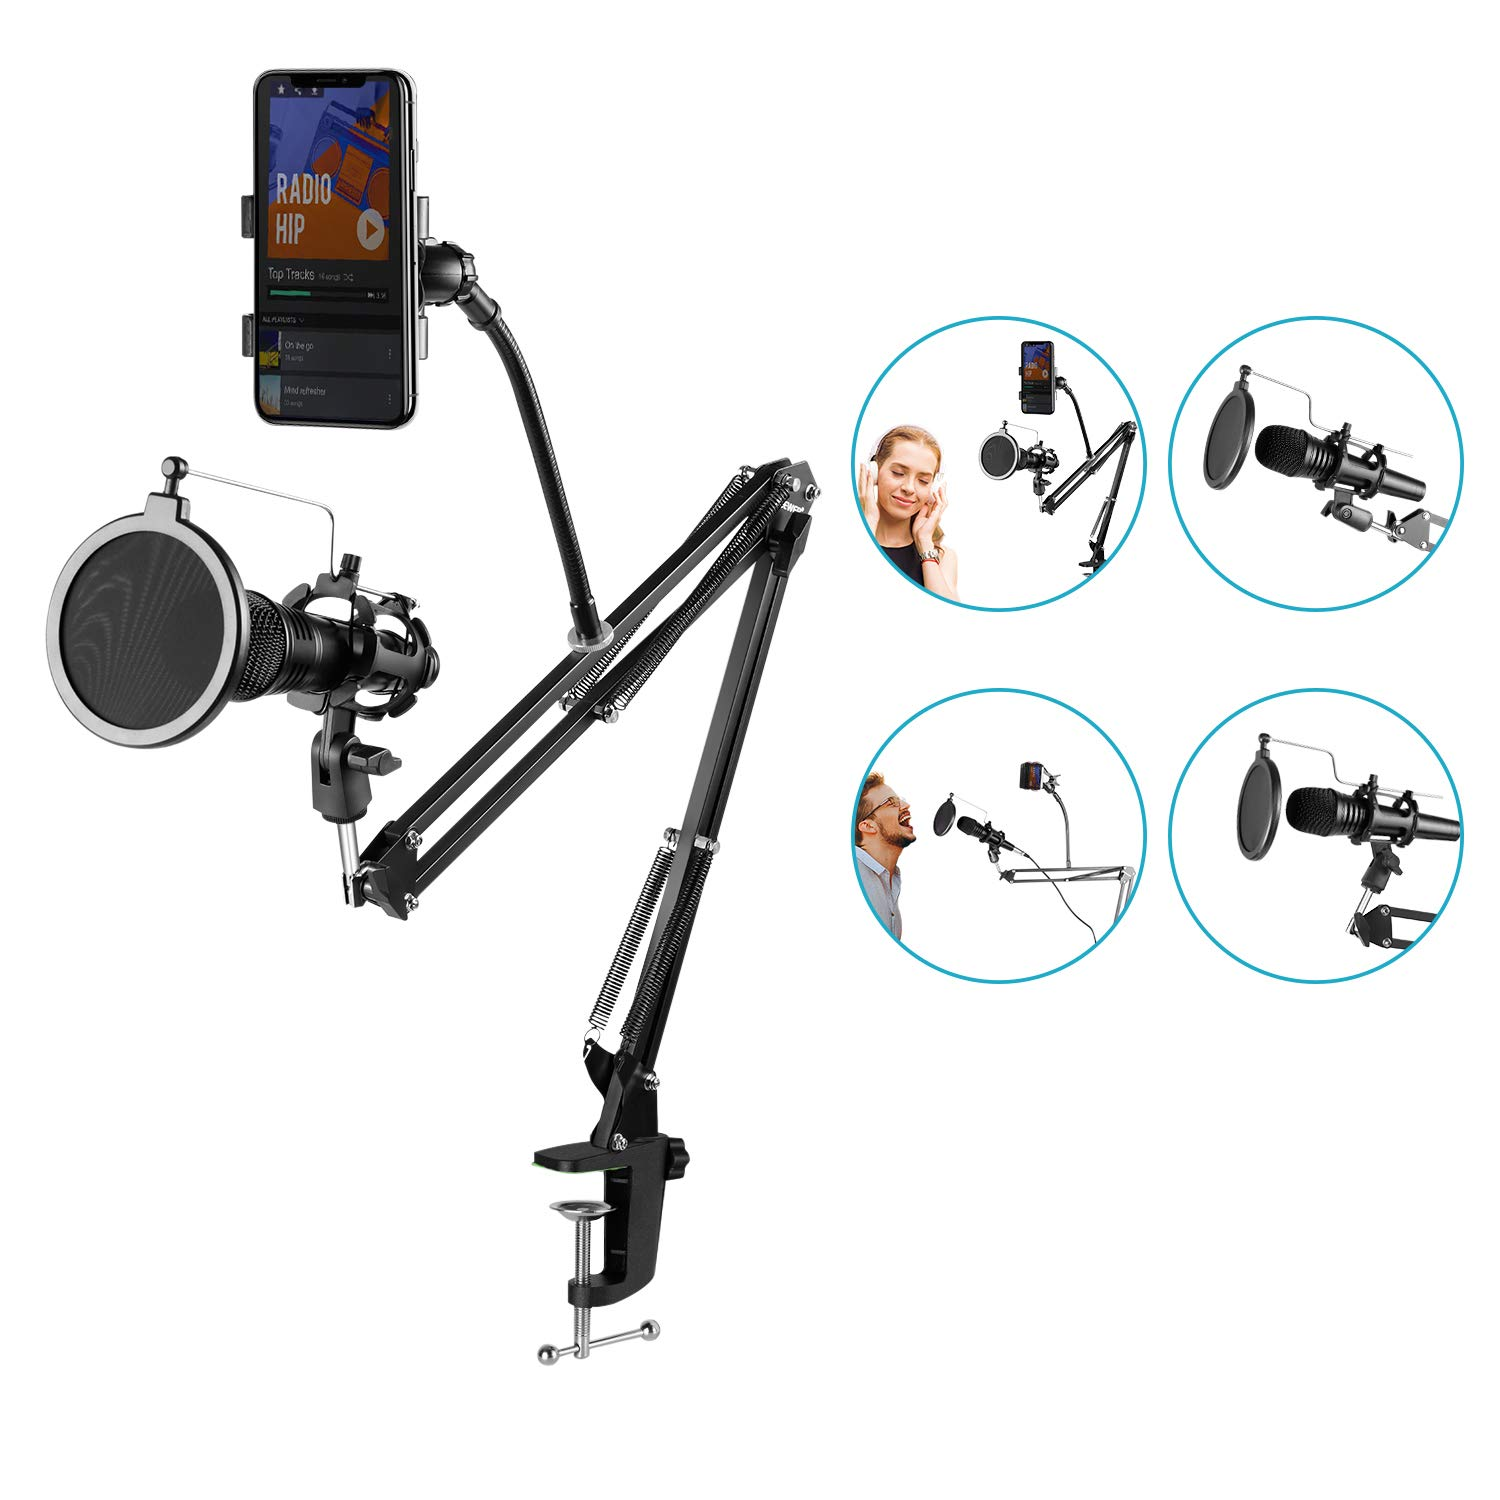 Neewer Pro Desktop Microphone Tripod Stand with Shock Mount Microphone Holder and Pop Filter Mask Shield for Studio Vocal Recording Podcasts, Online Chat, Meetings and Lectures(NW-2) 40093306